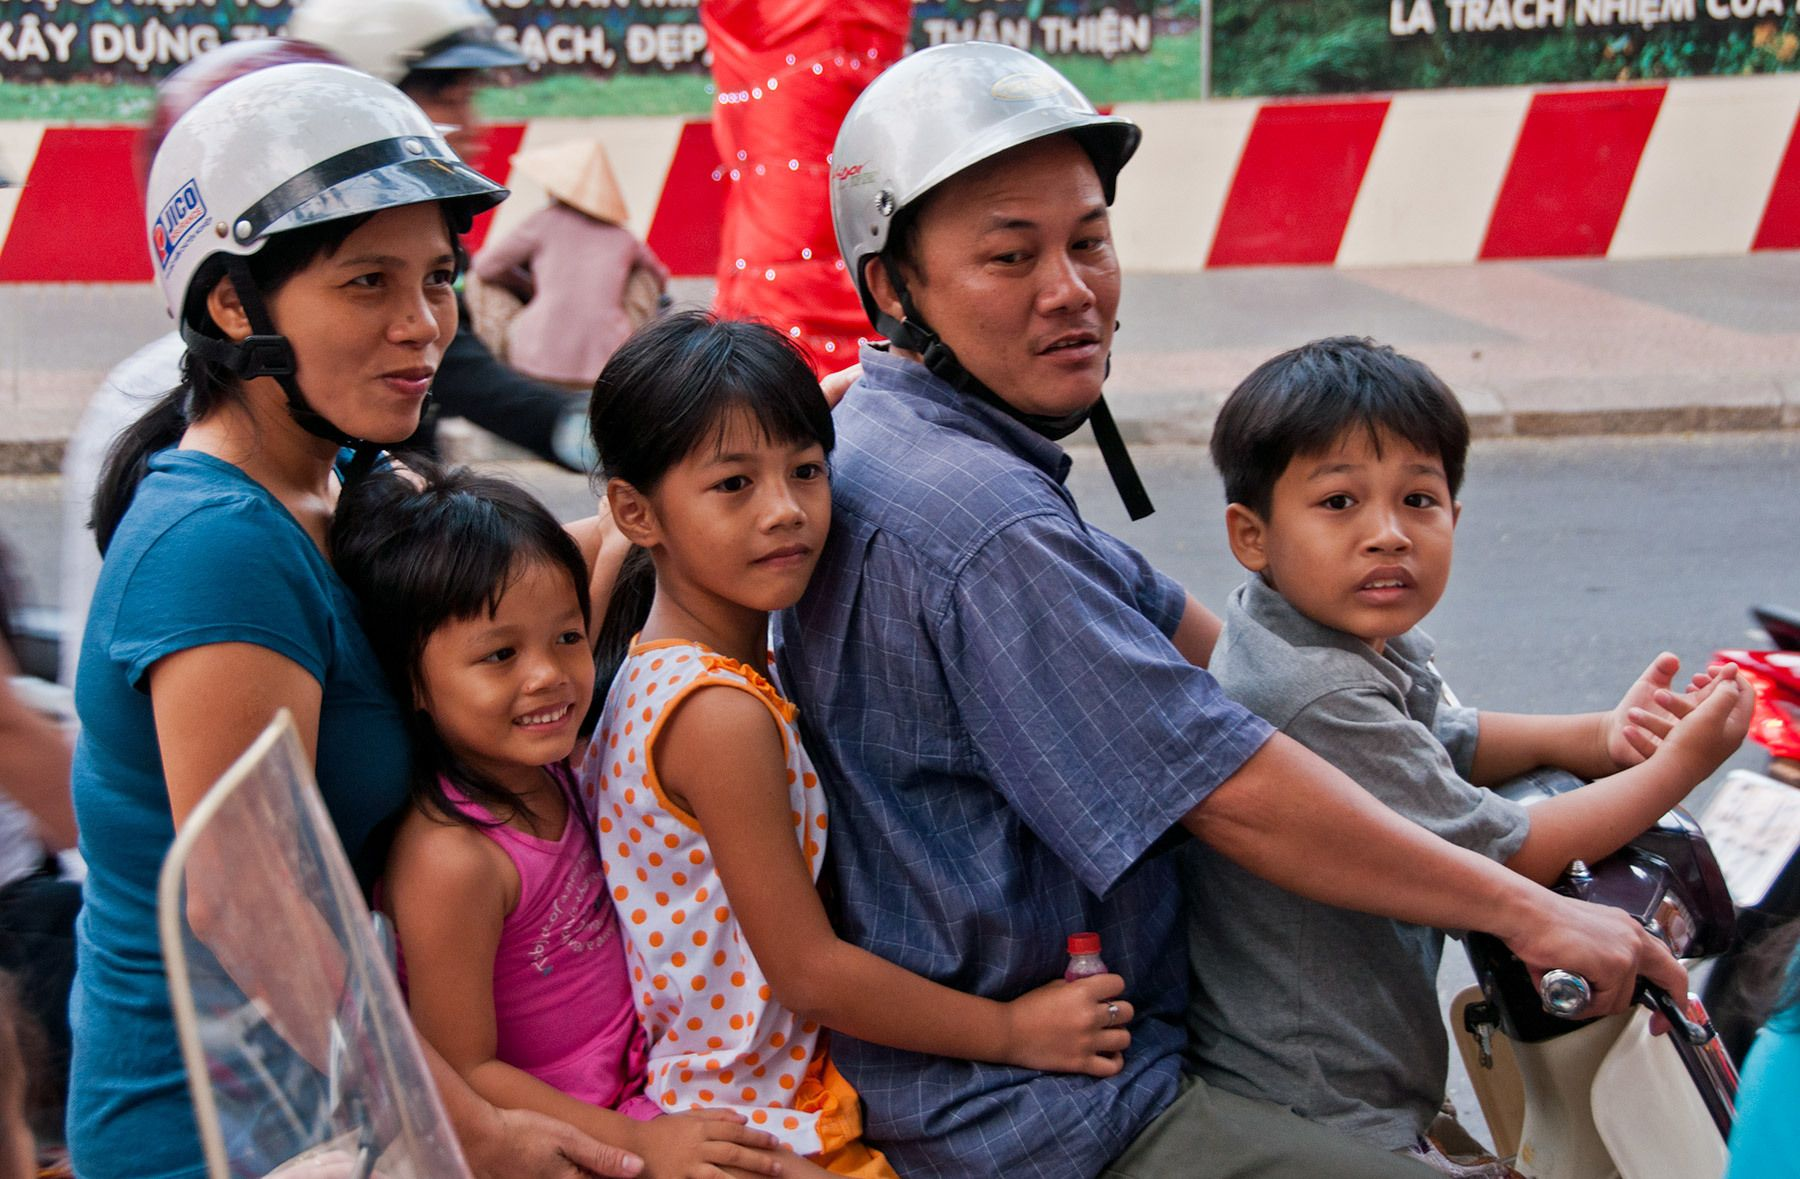 Family on Motorbike, Hanoi, North Vietnam